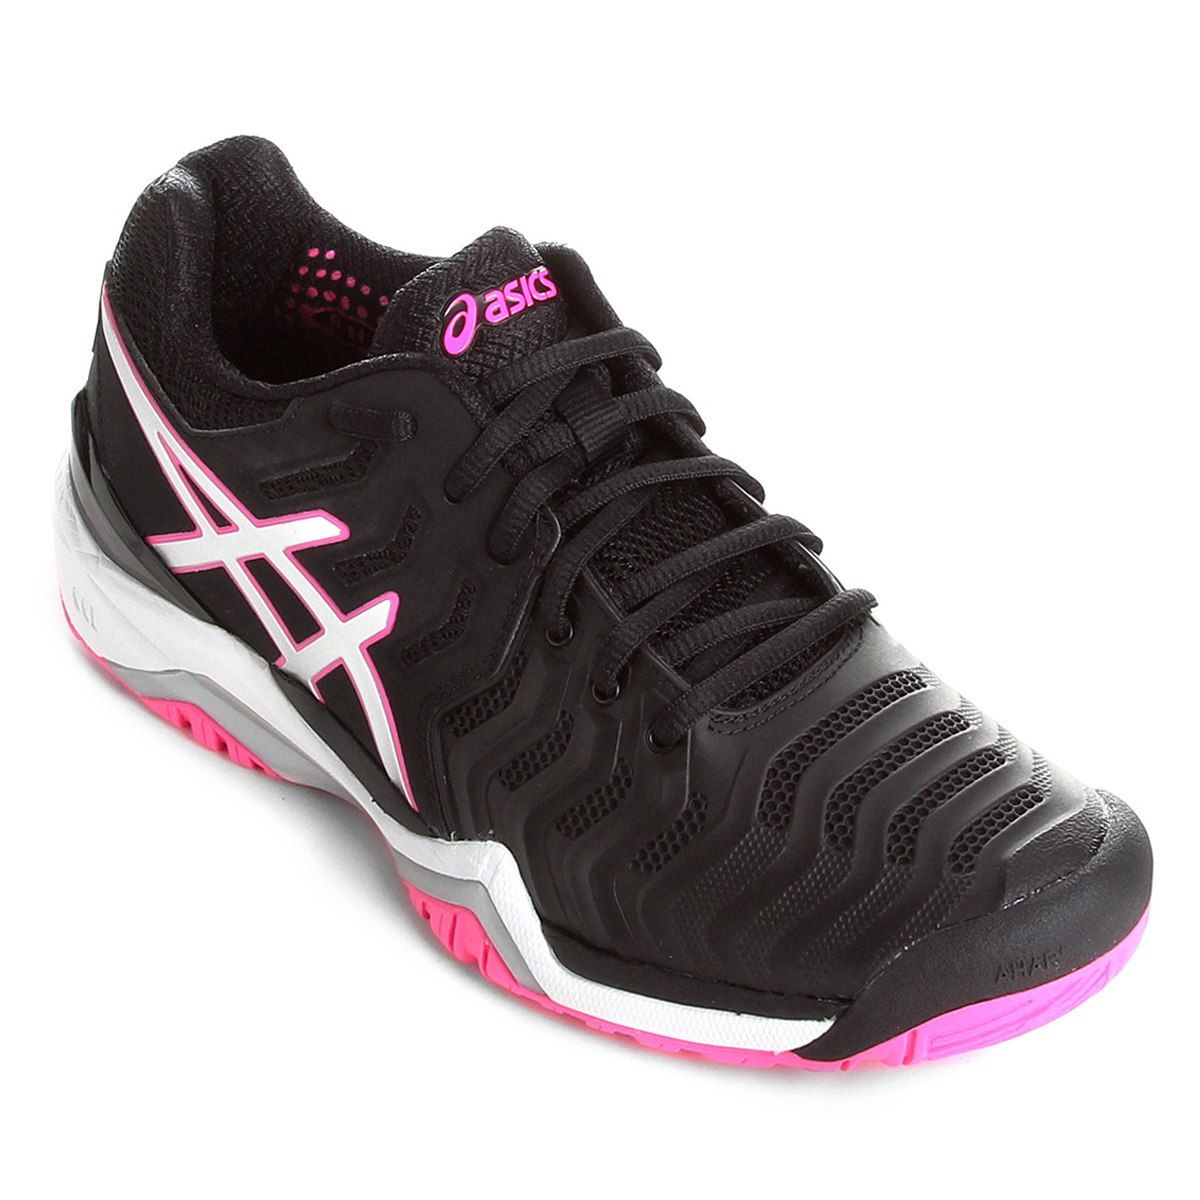 Tênis Asics Gel Resolution 7 - Feminino - Preto e Rosa